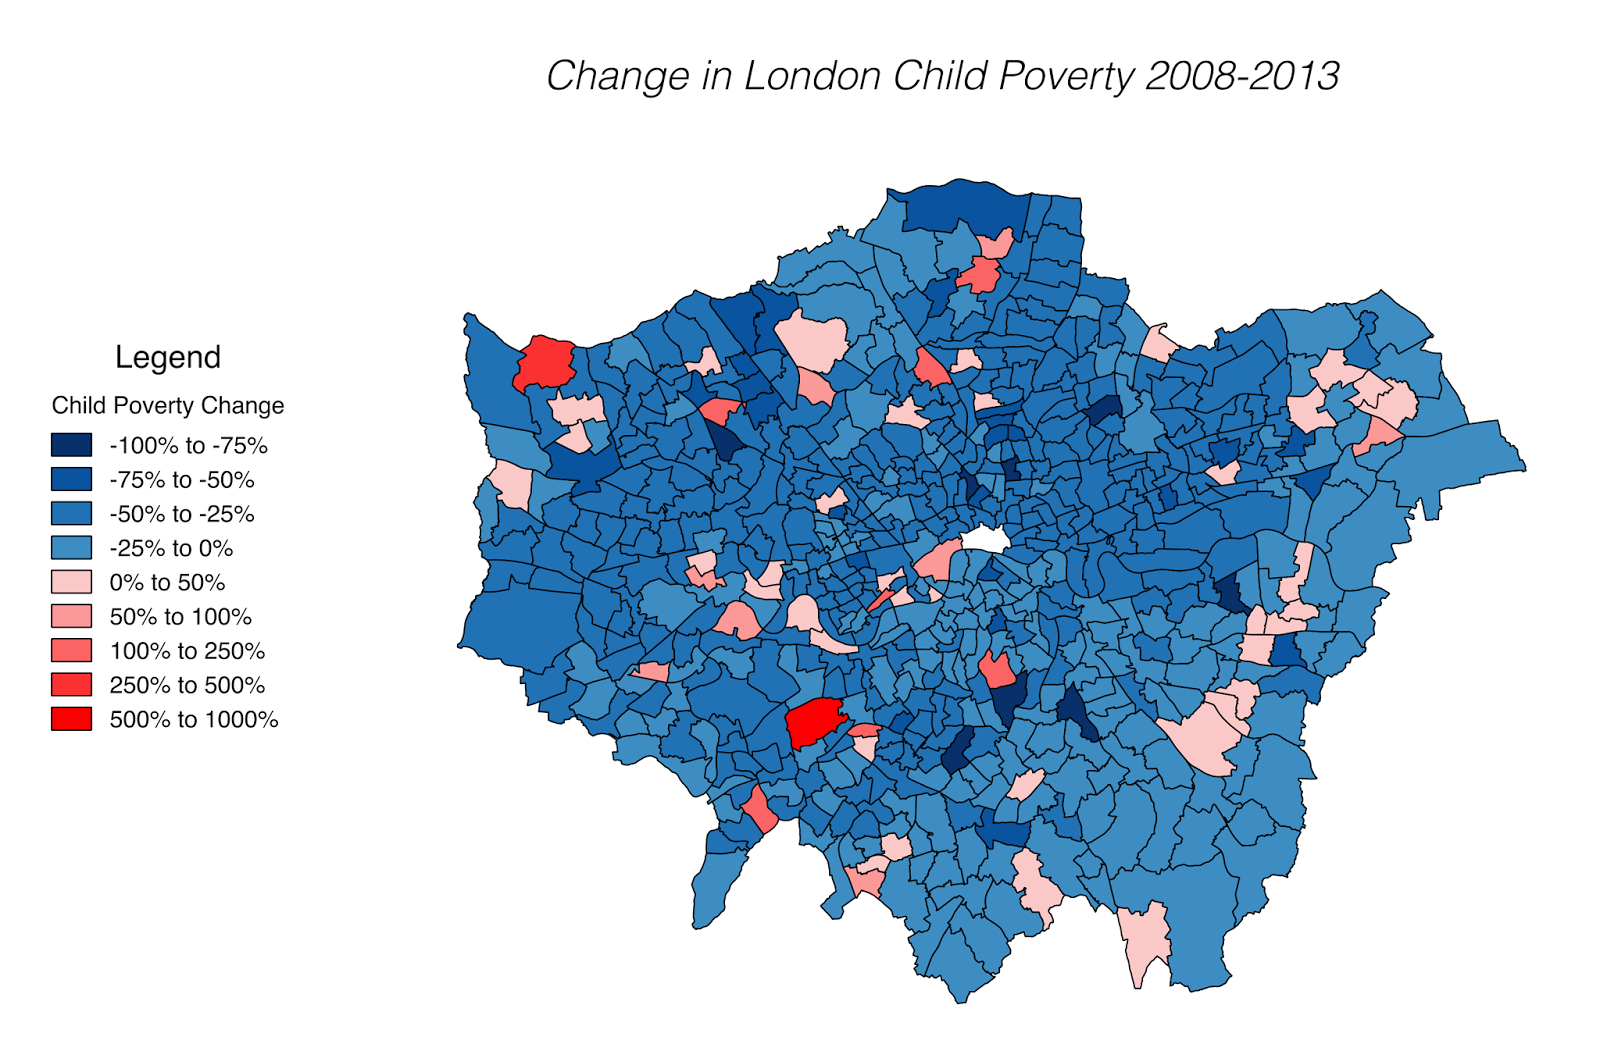 Change in London child poverty (2008 - 2013)